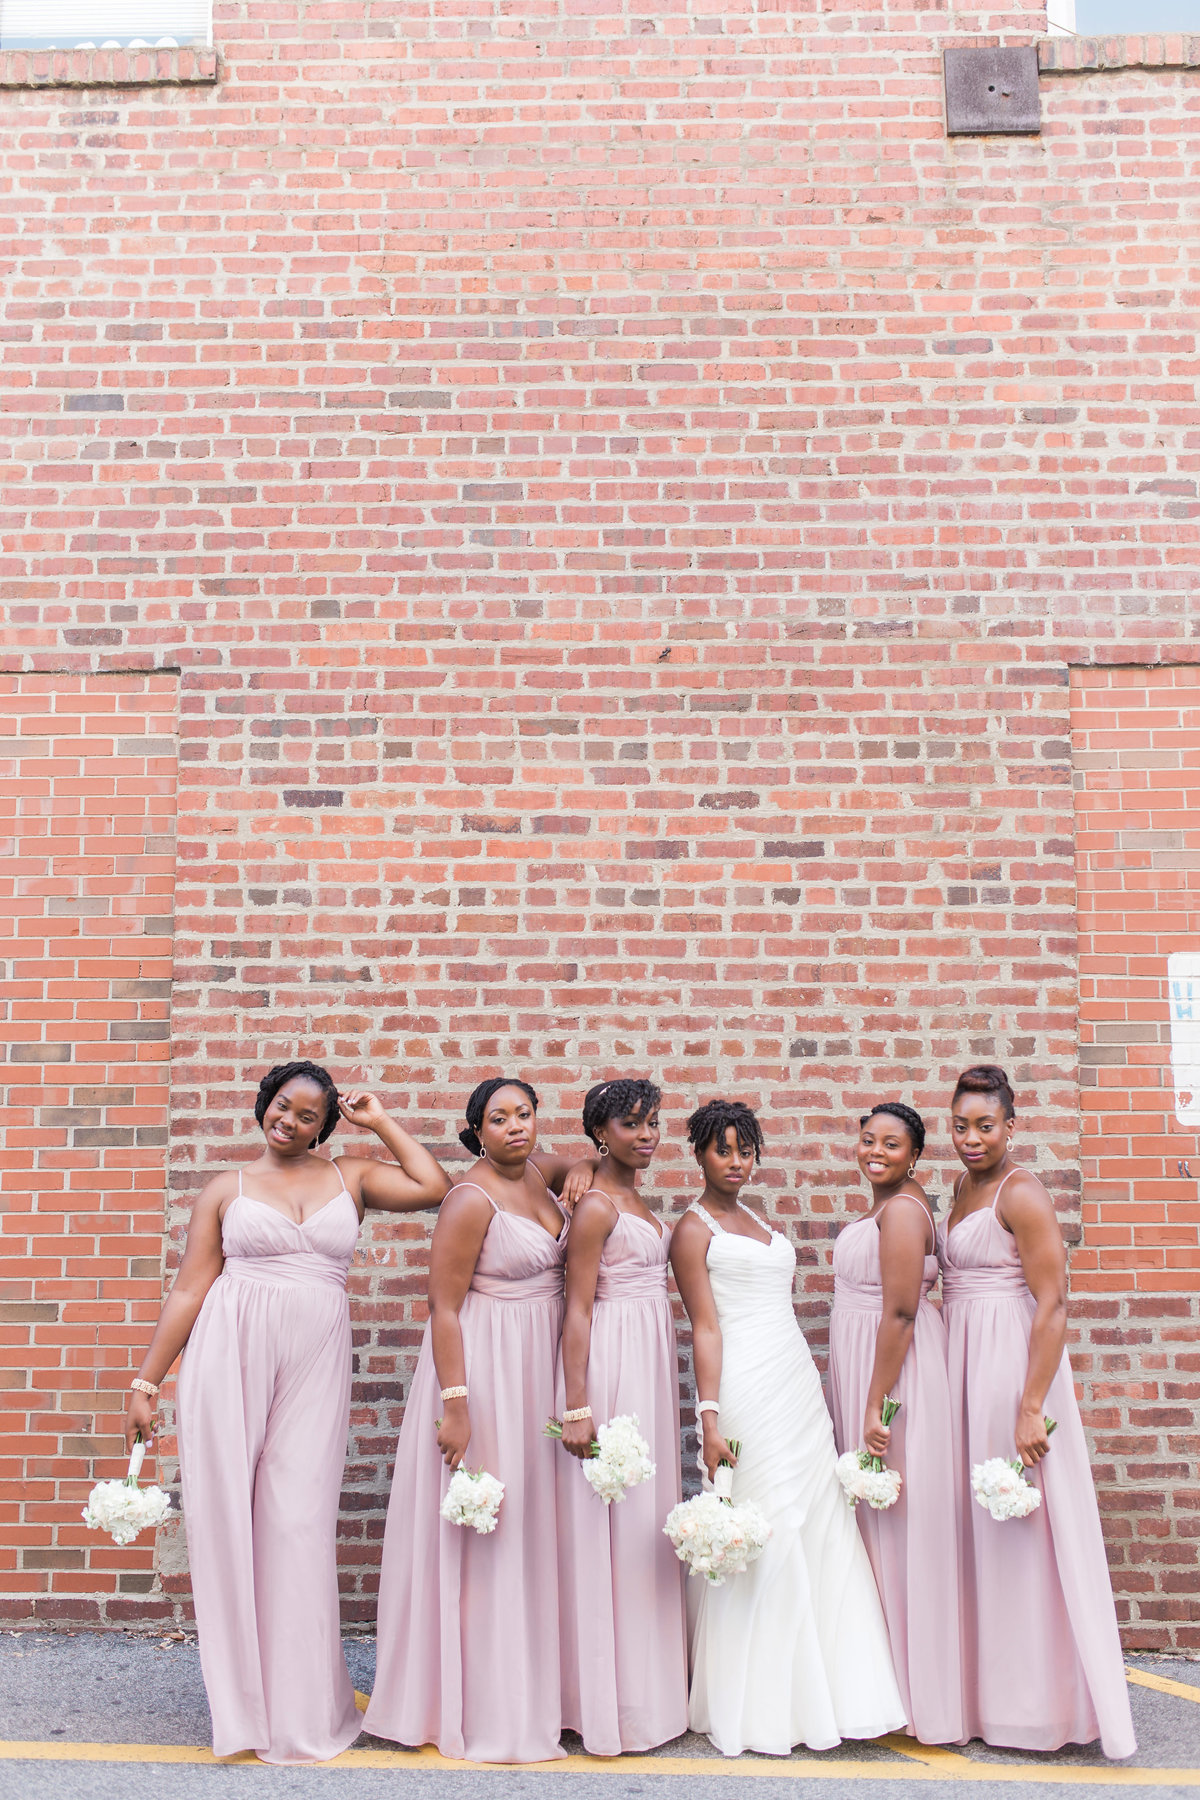 Wedding photographer in Chapel Hill